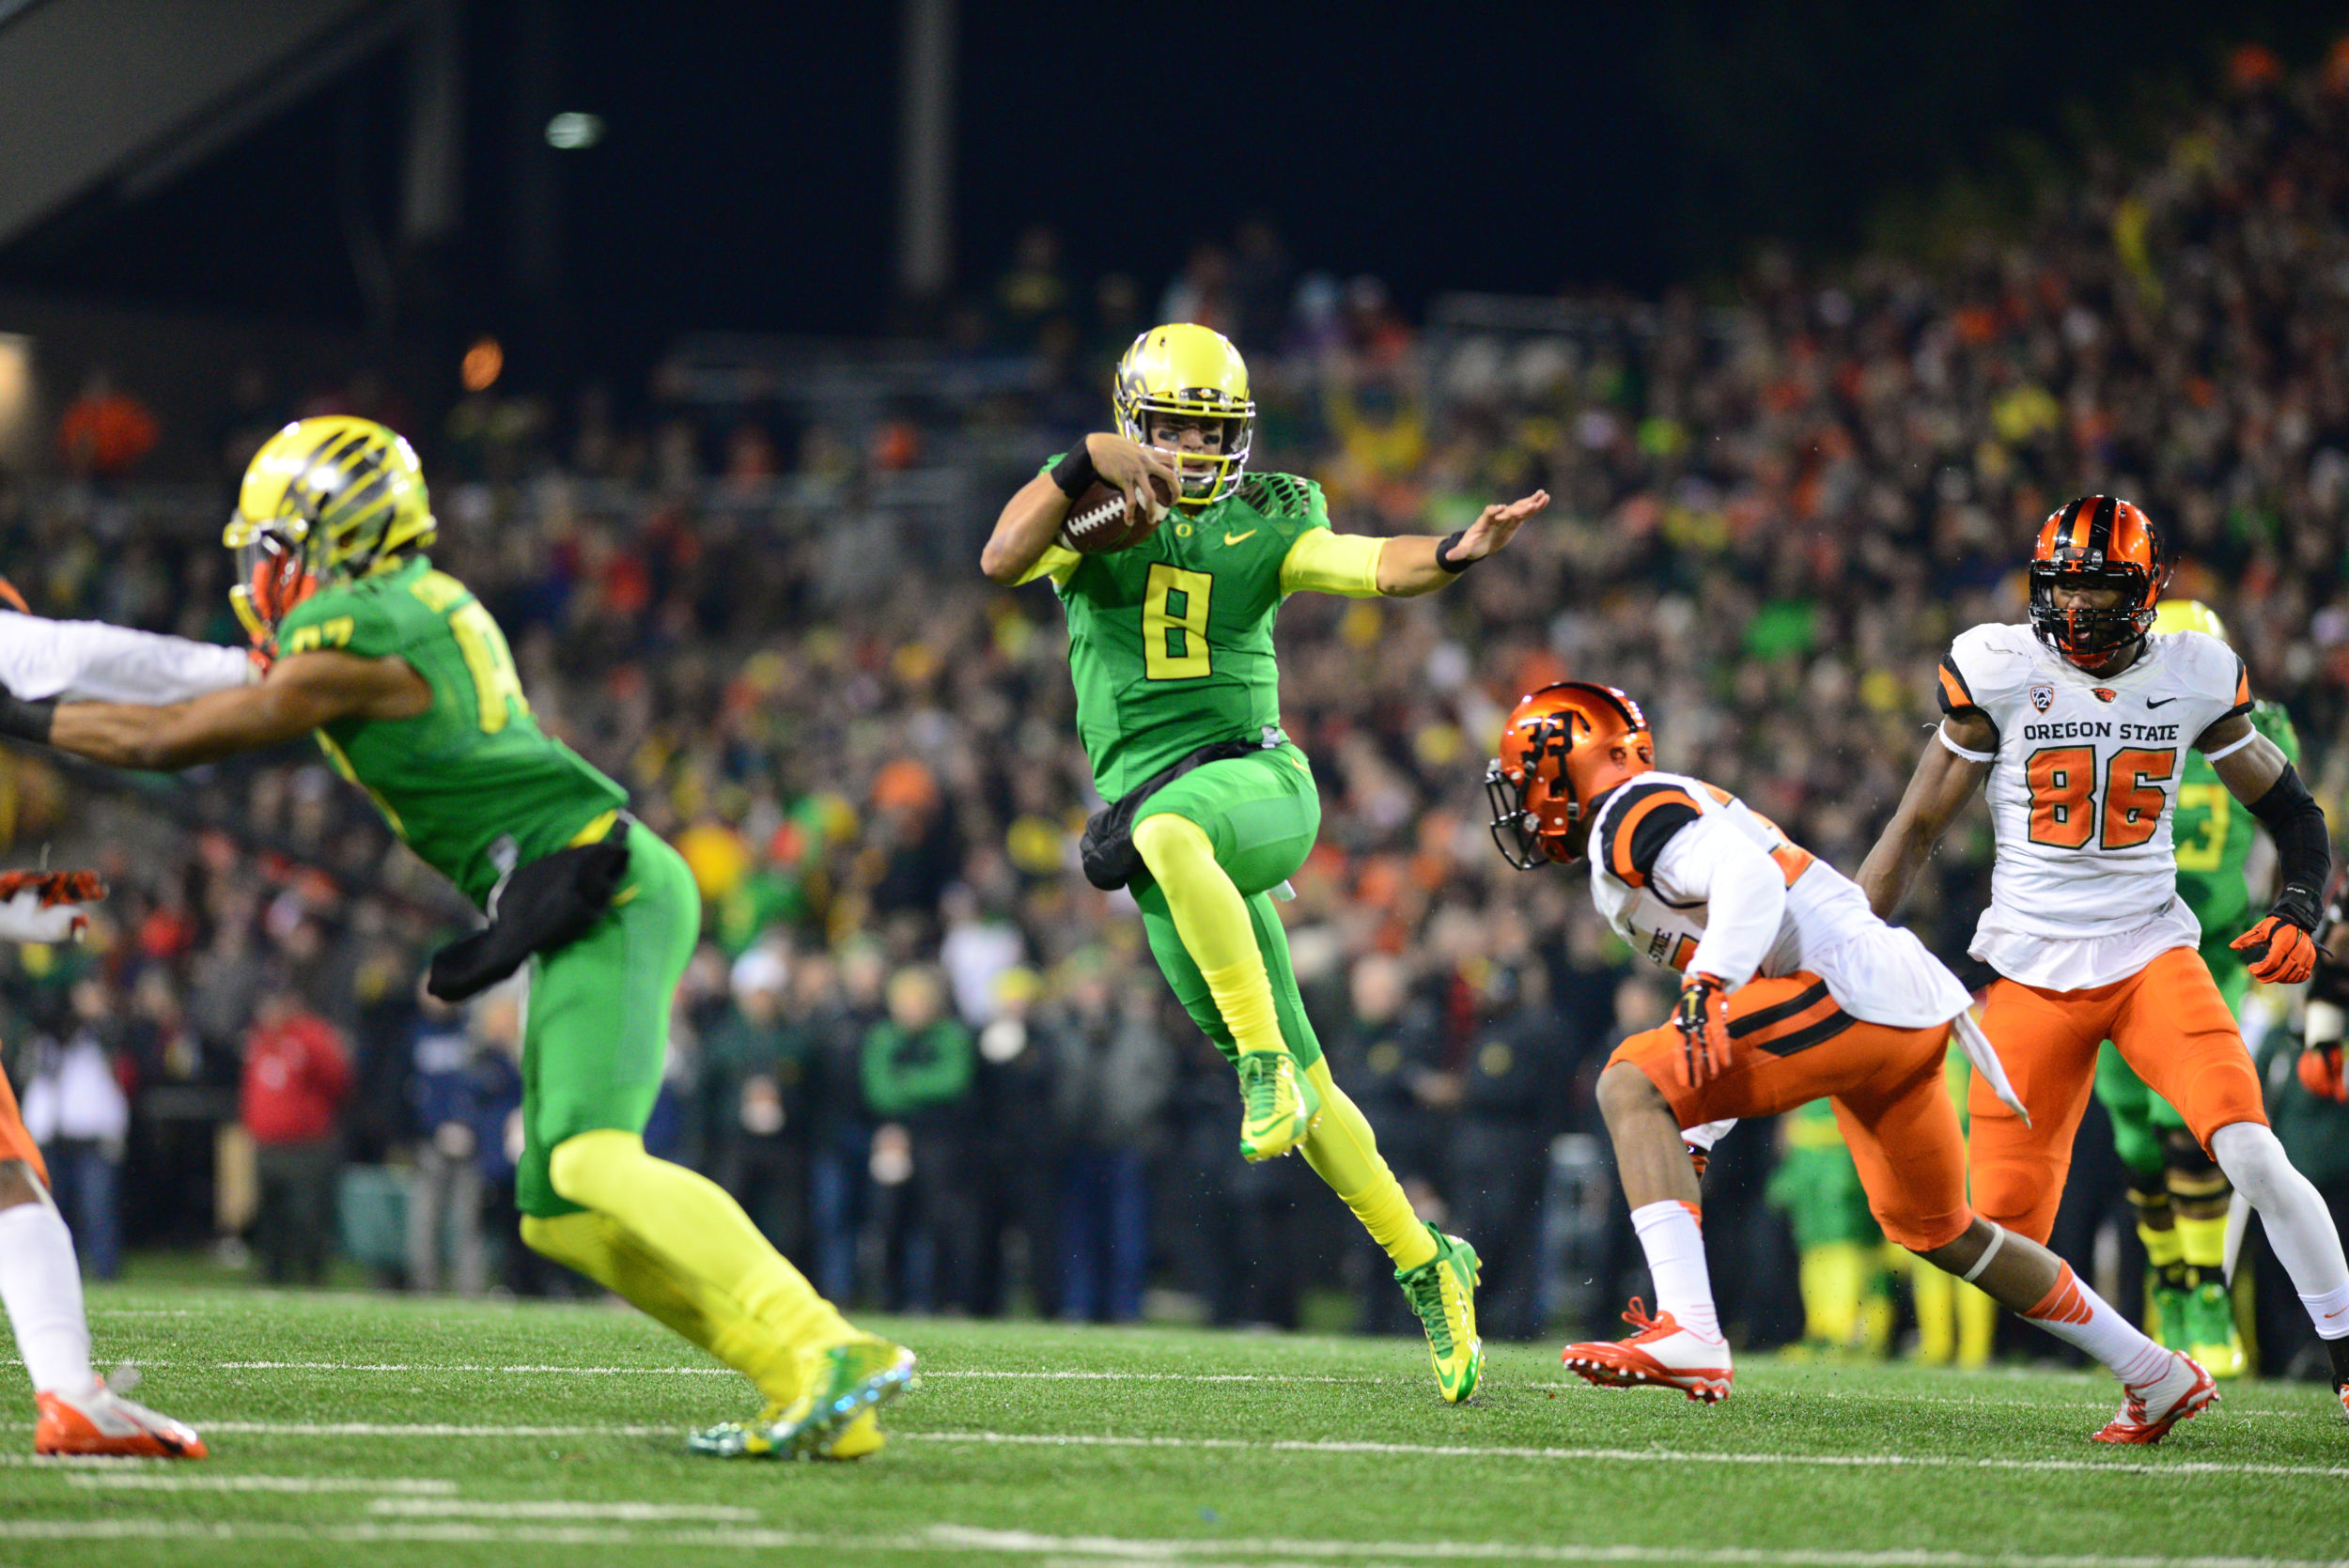 University of Oregon Football quarterback